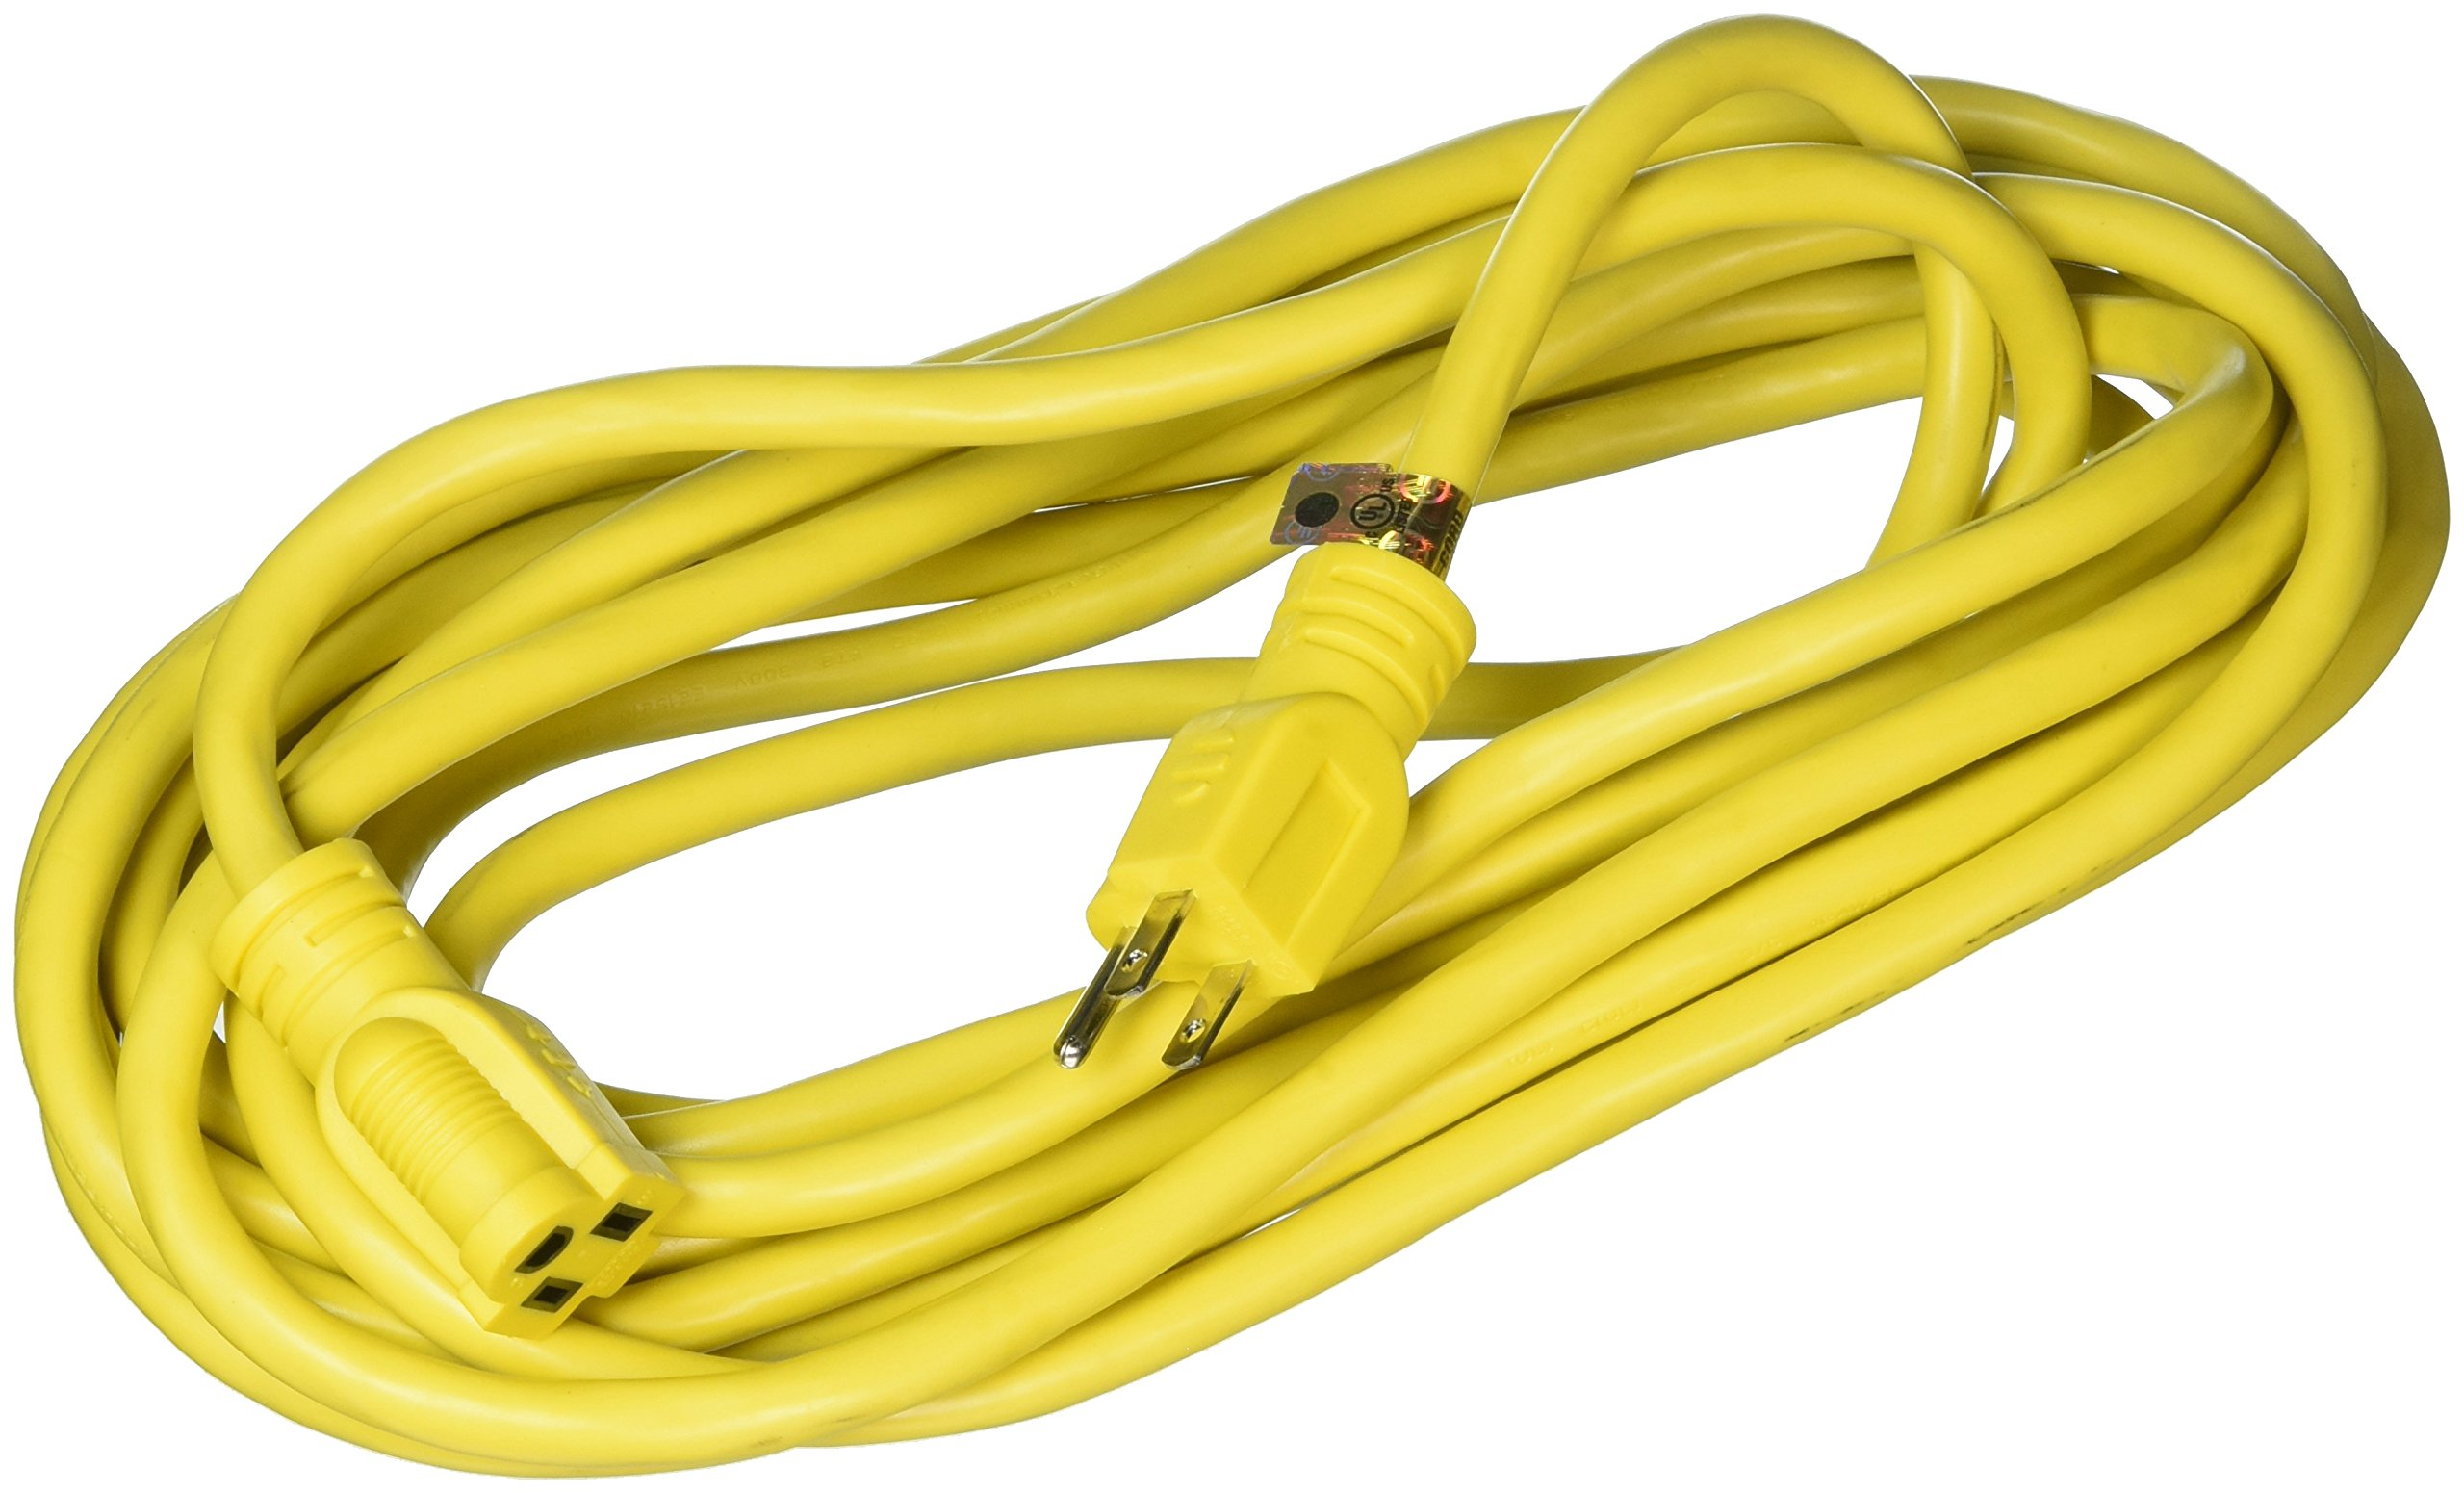 Cal Hawk Tools CEC1225 Outdoor Extension Cord